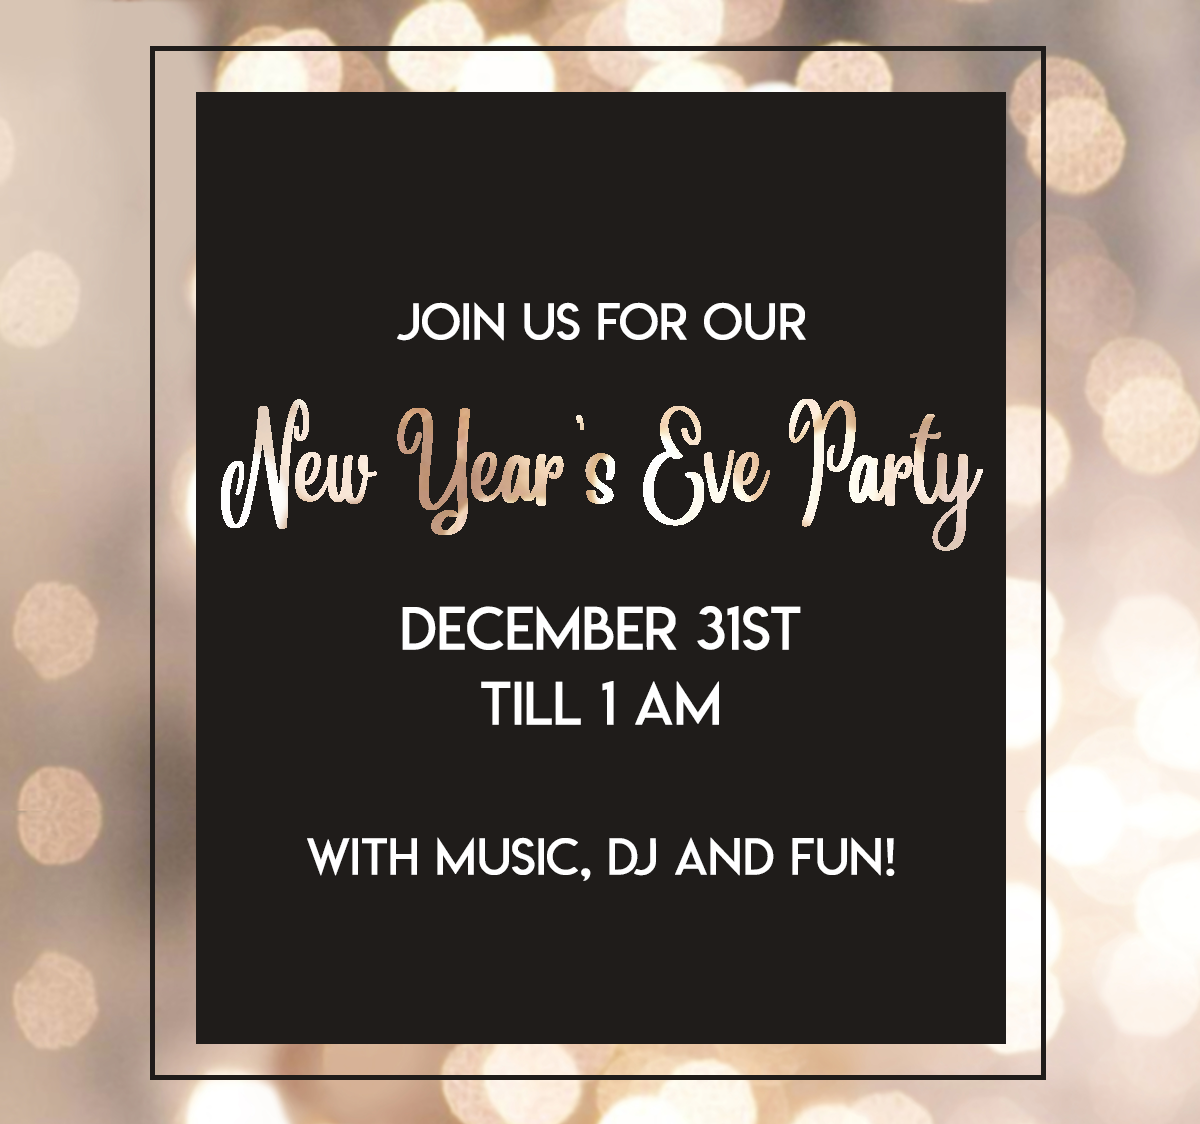 Join us for out New Year's Eve party on December 31st until 1 am. We'll have music, a DJ and fun!